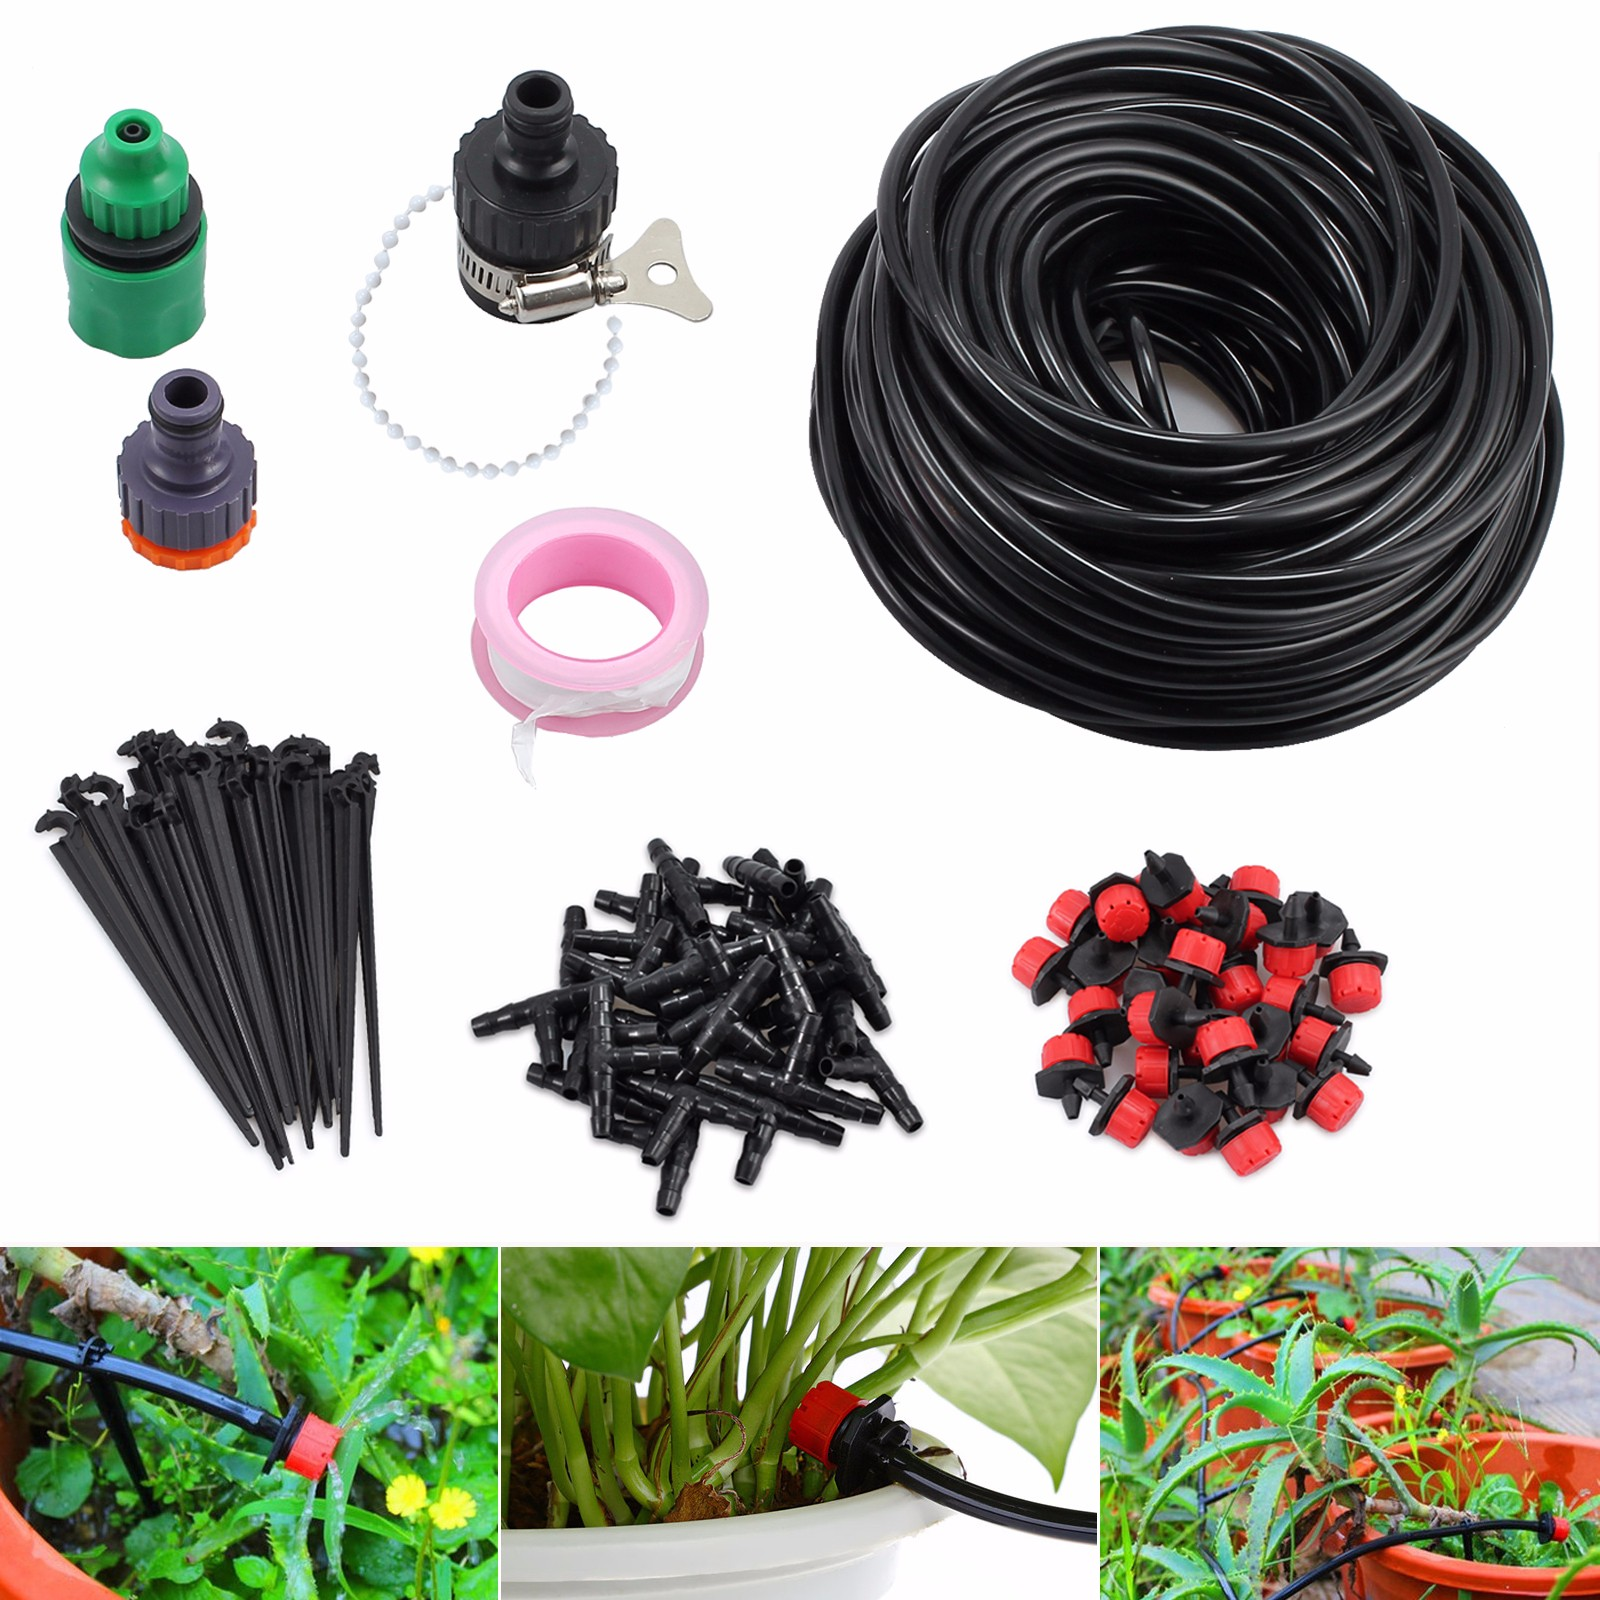 Esynic 25m Drip Irrigation System Kit Automatic Watering Drip Diy